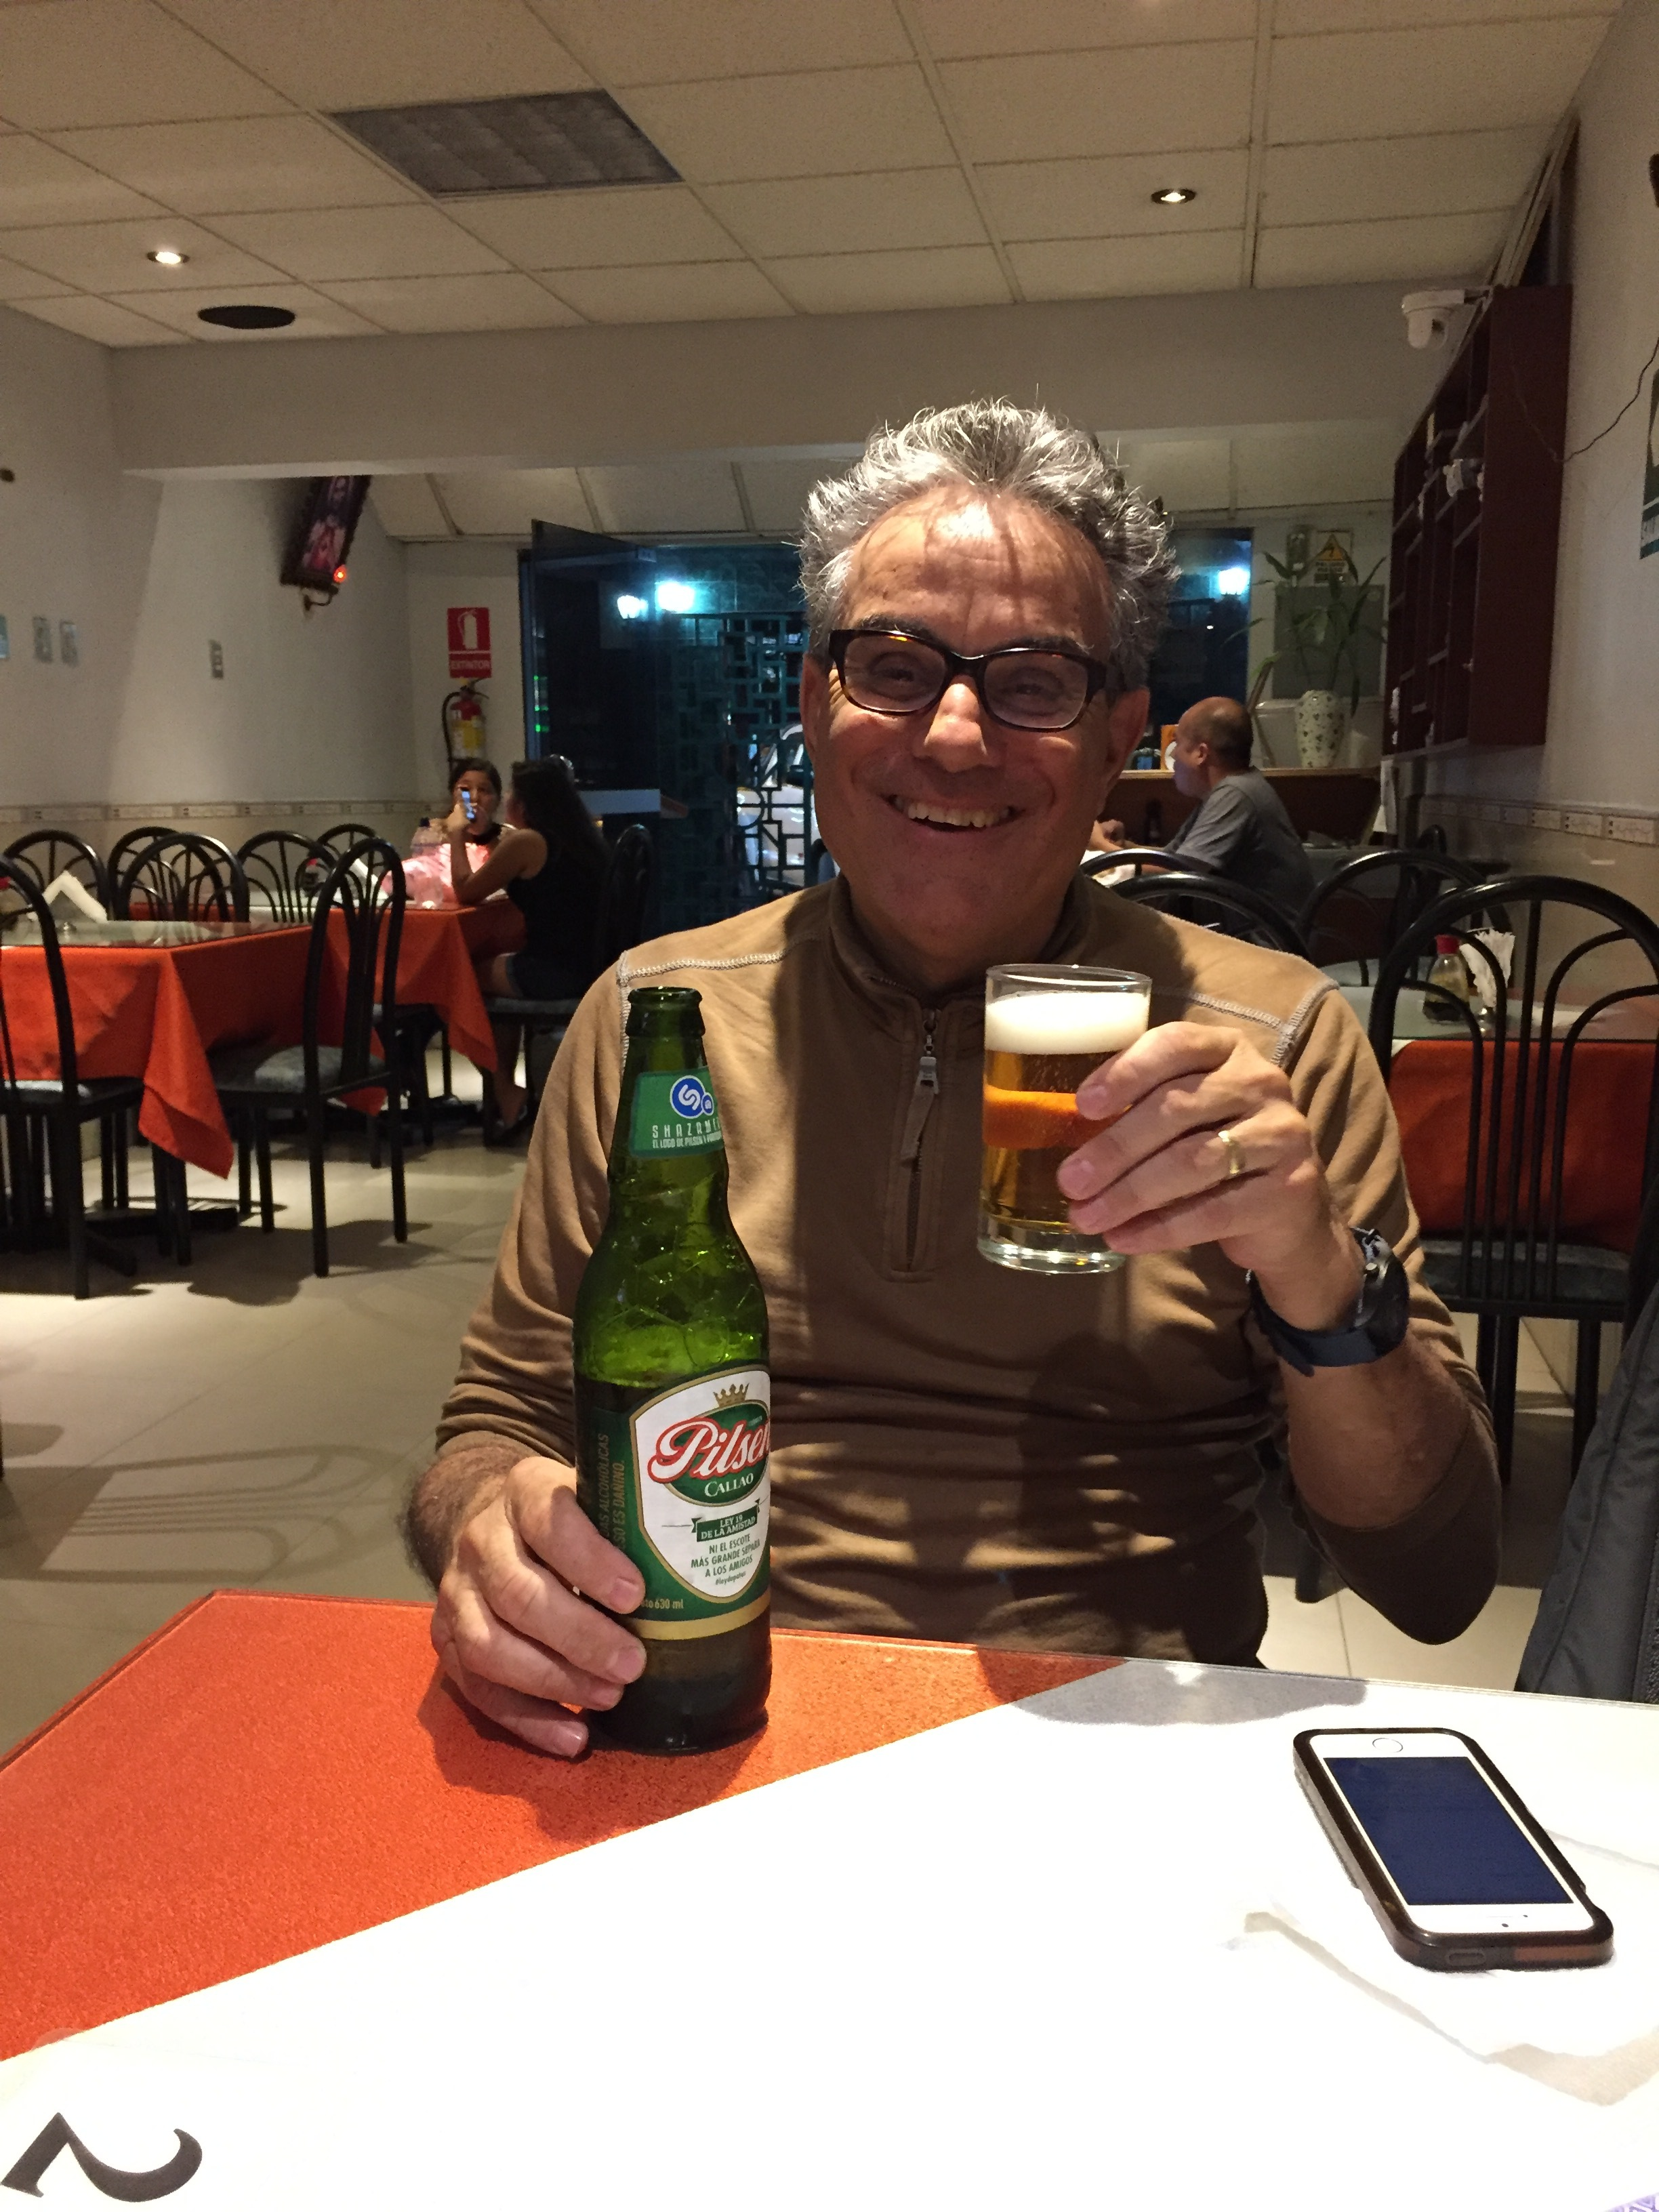 Frank with his beer at the Chinese restaurant